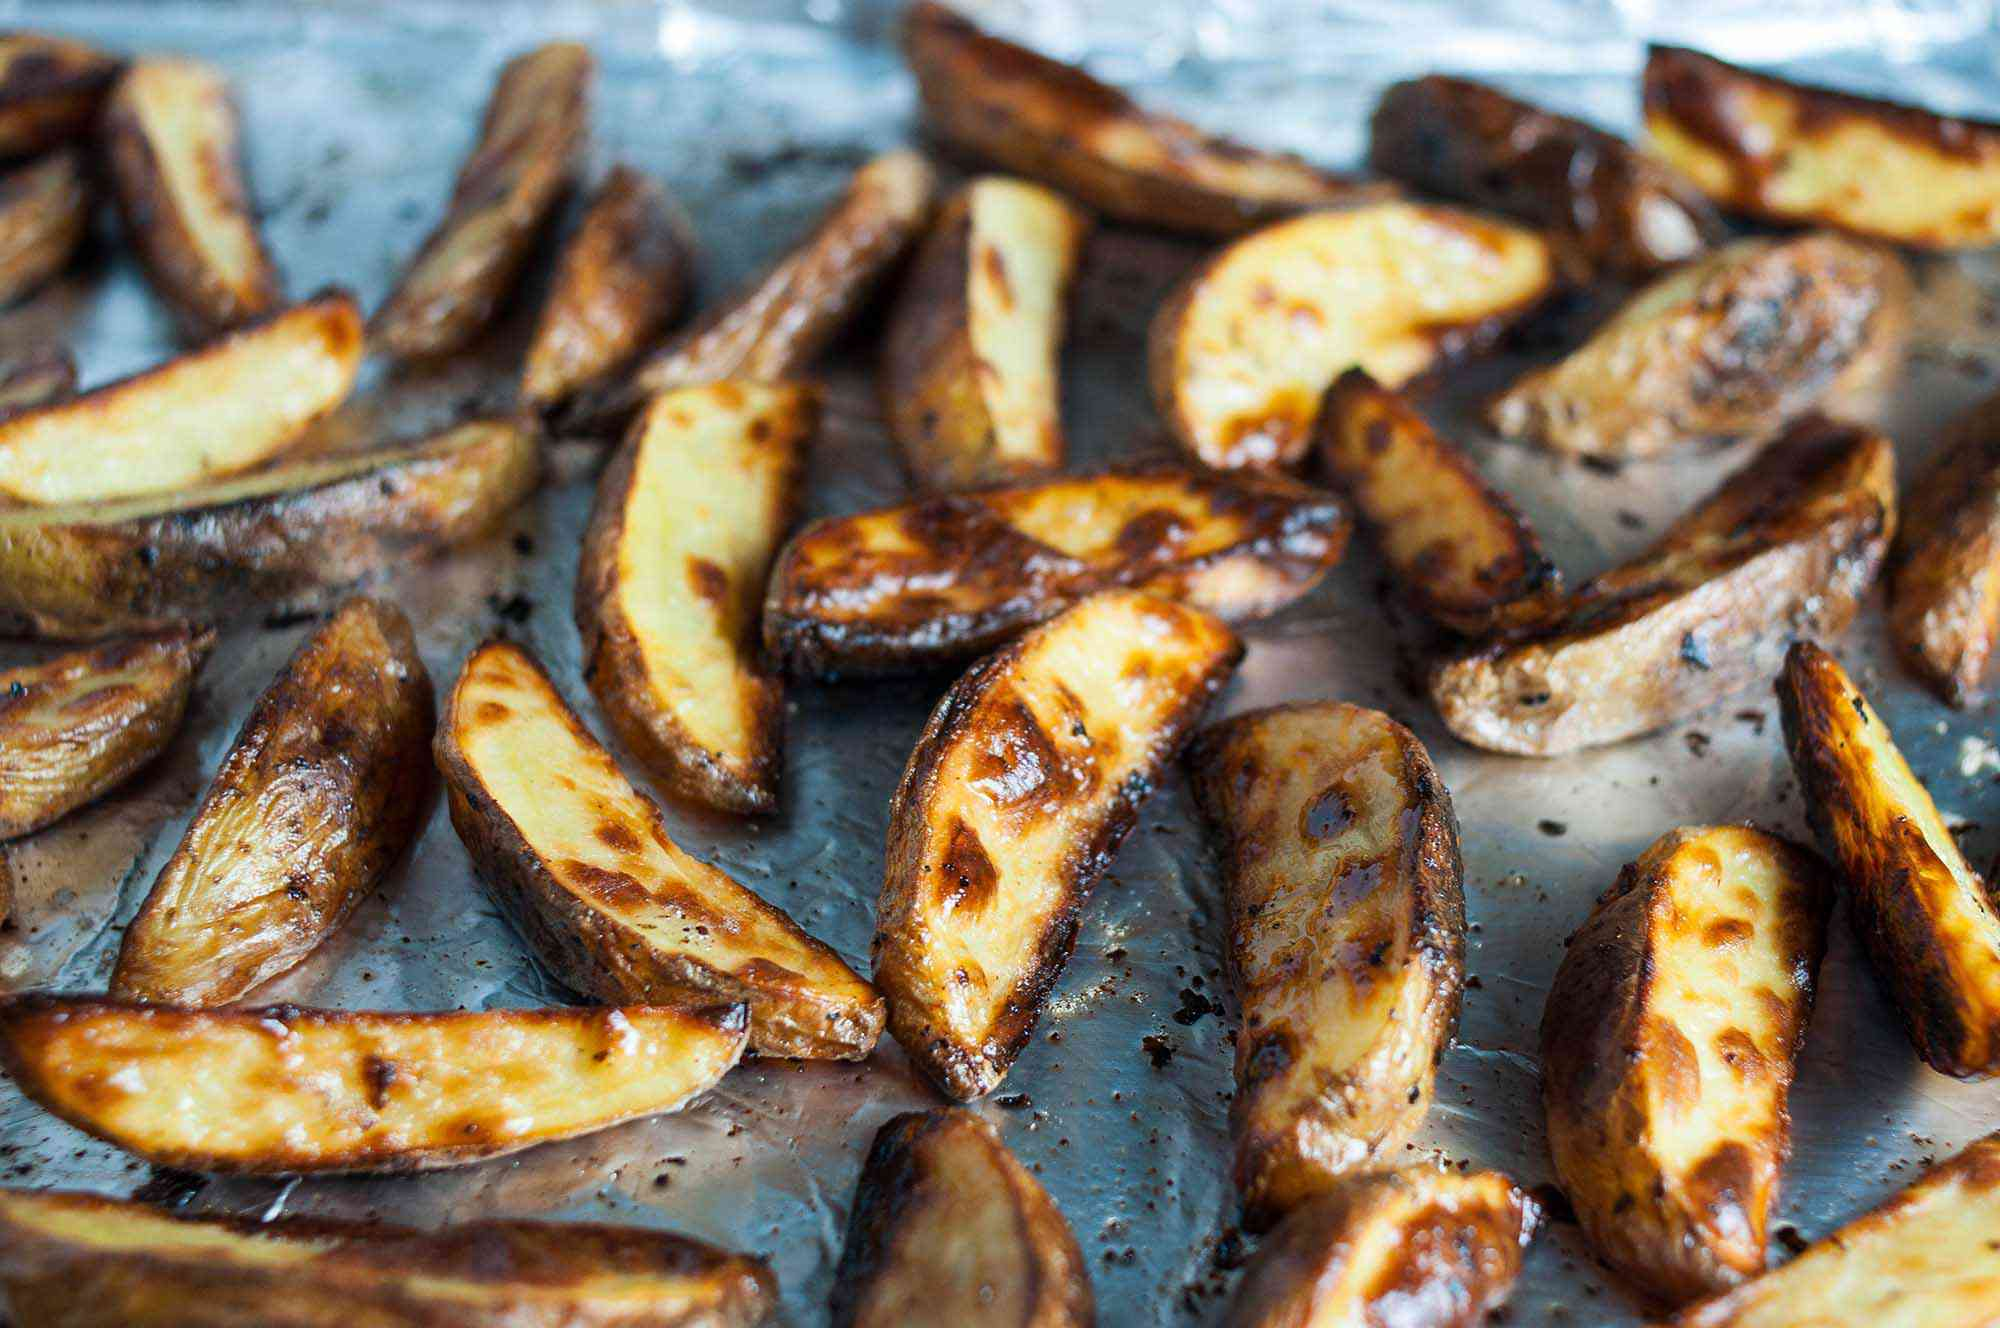 Baked potato wedges for fish and chips